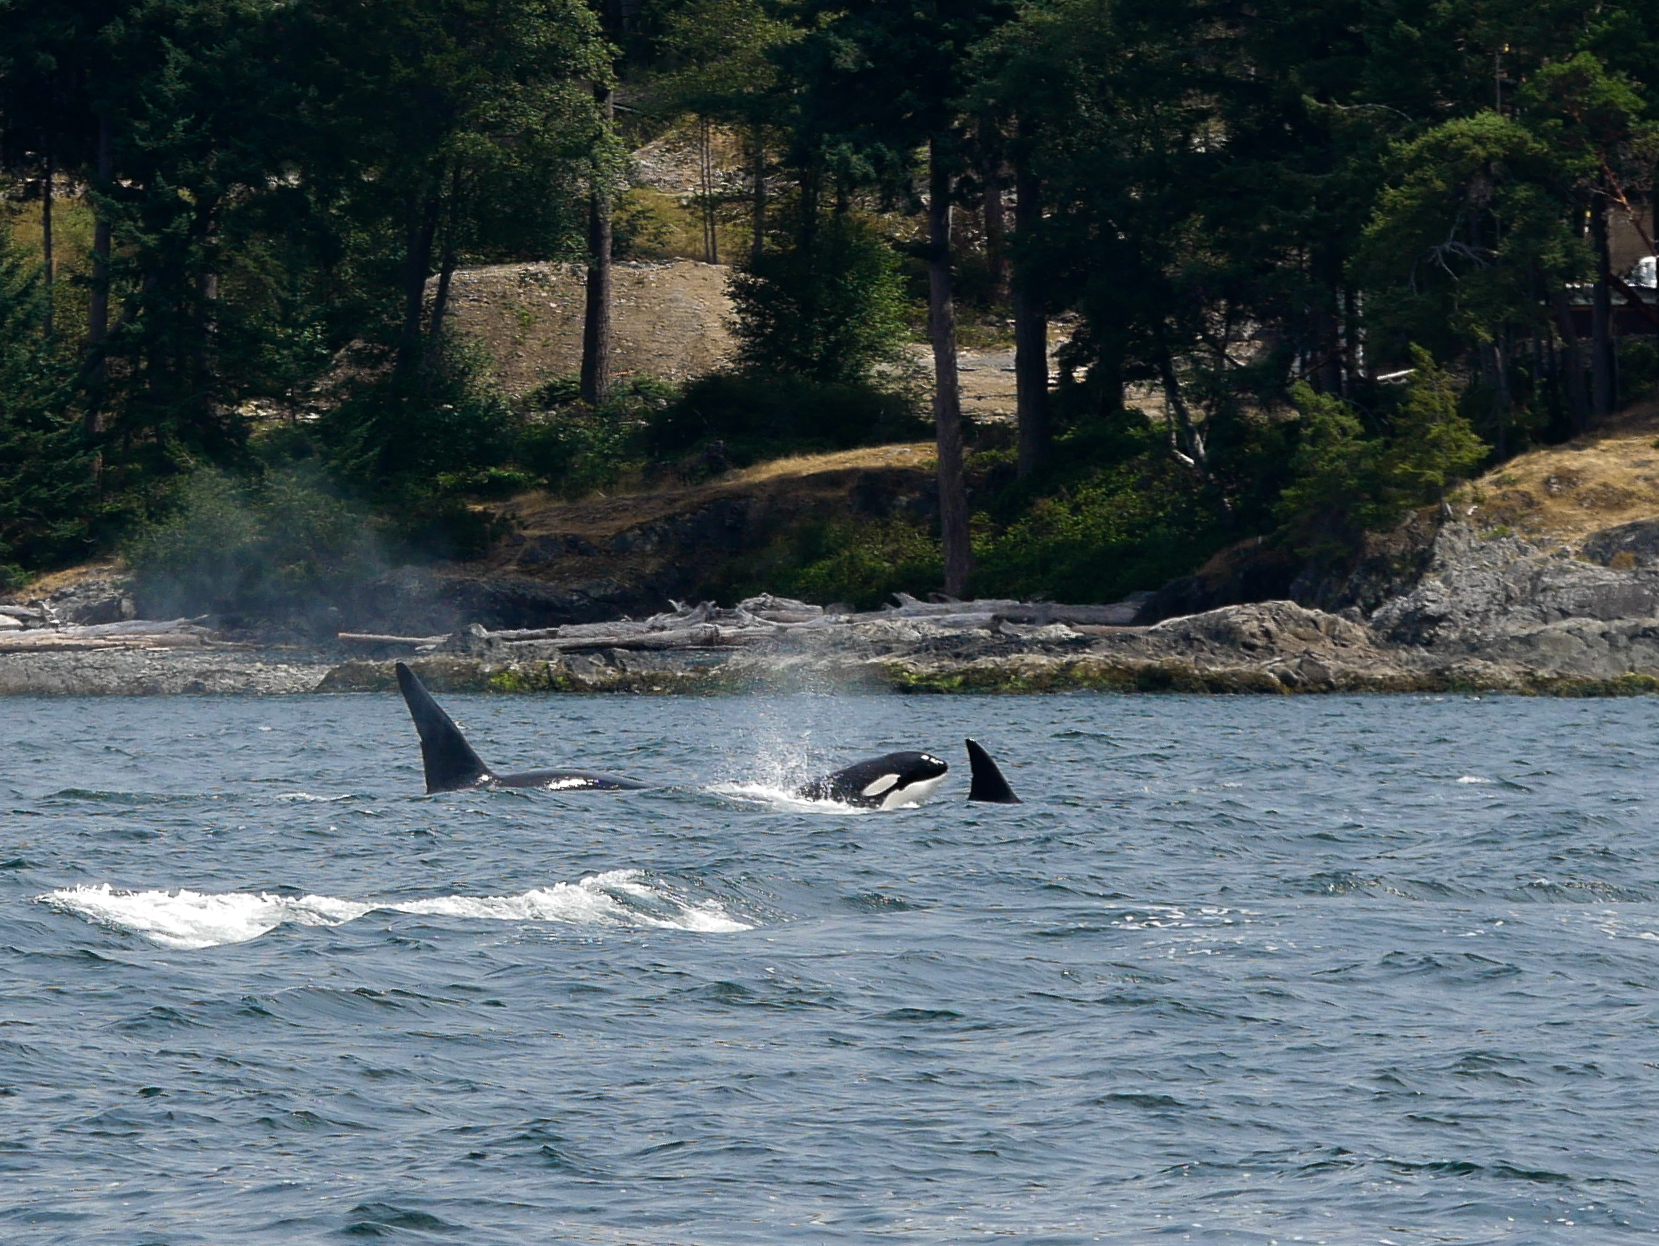 Three orcas at different stages of surfacing. Photo by Jilann Campbell.